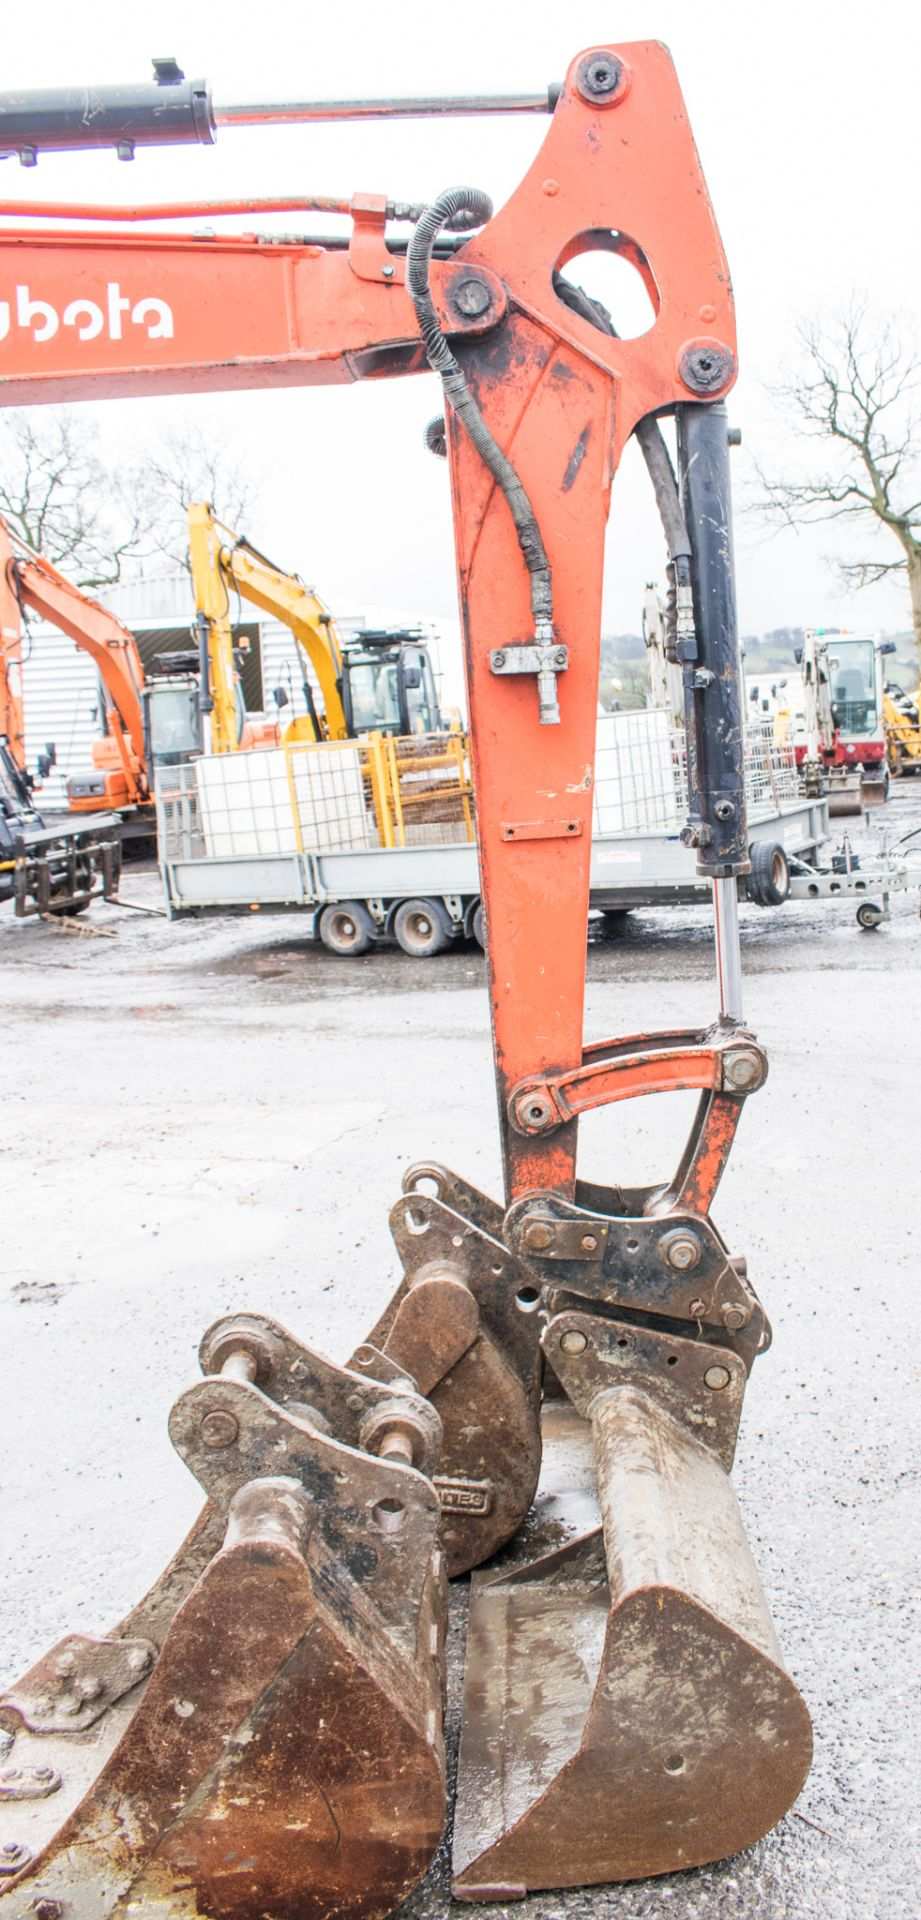 Lot 16A - Kubota U48.4 4.8 tonne rubber tracked excavator Year: 2015 S/N: 52743 Recorded hours: 2171 c/w 3